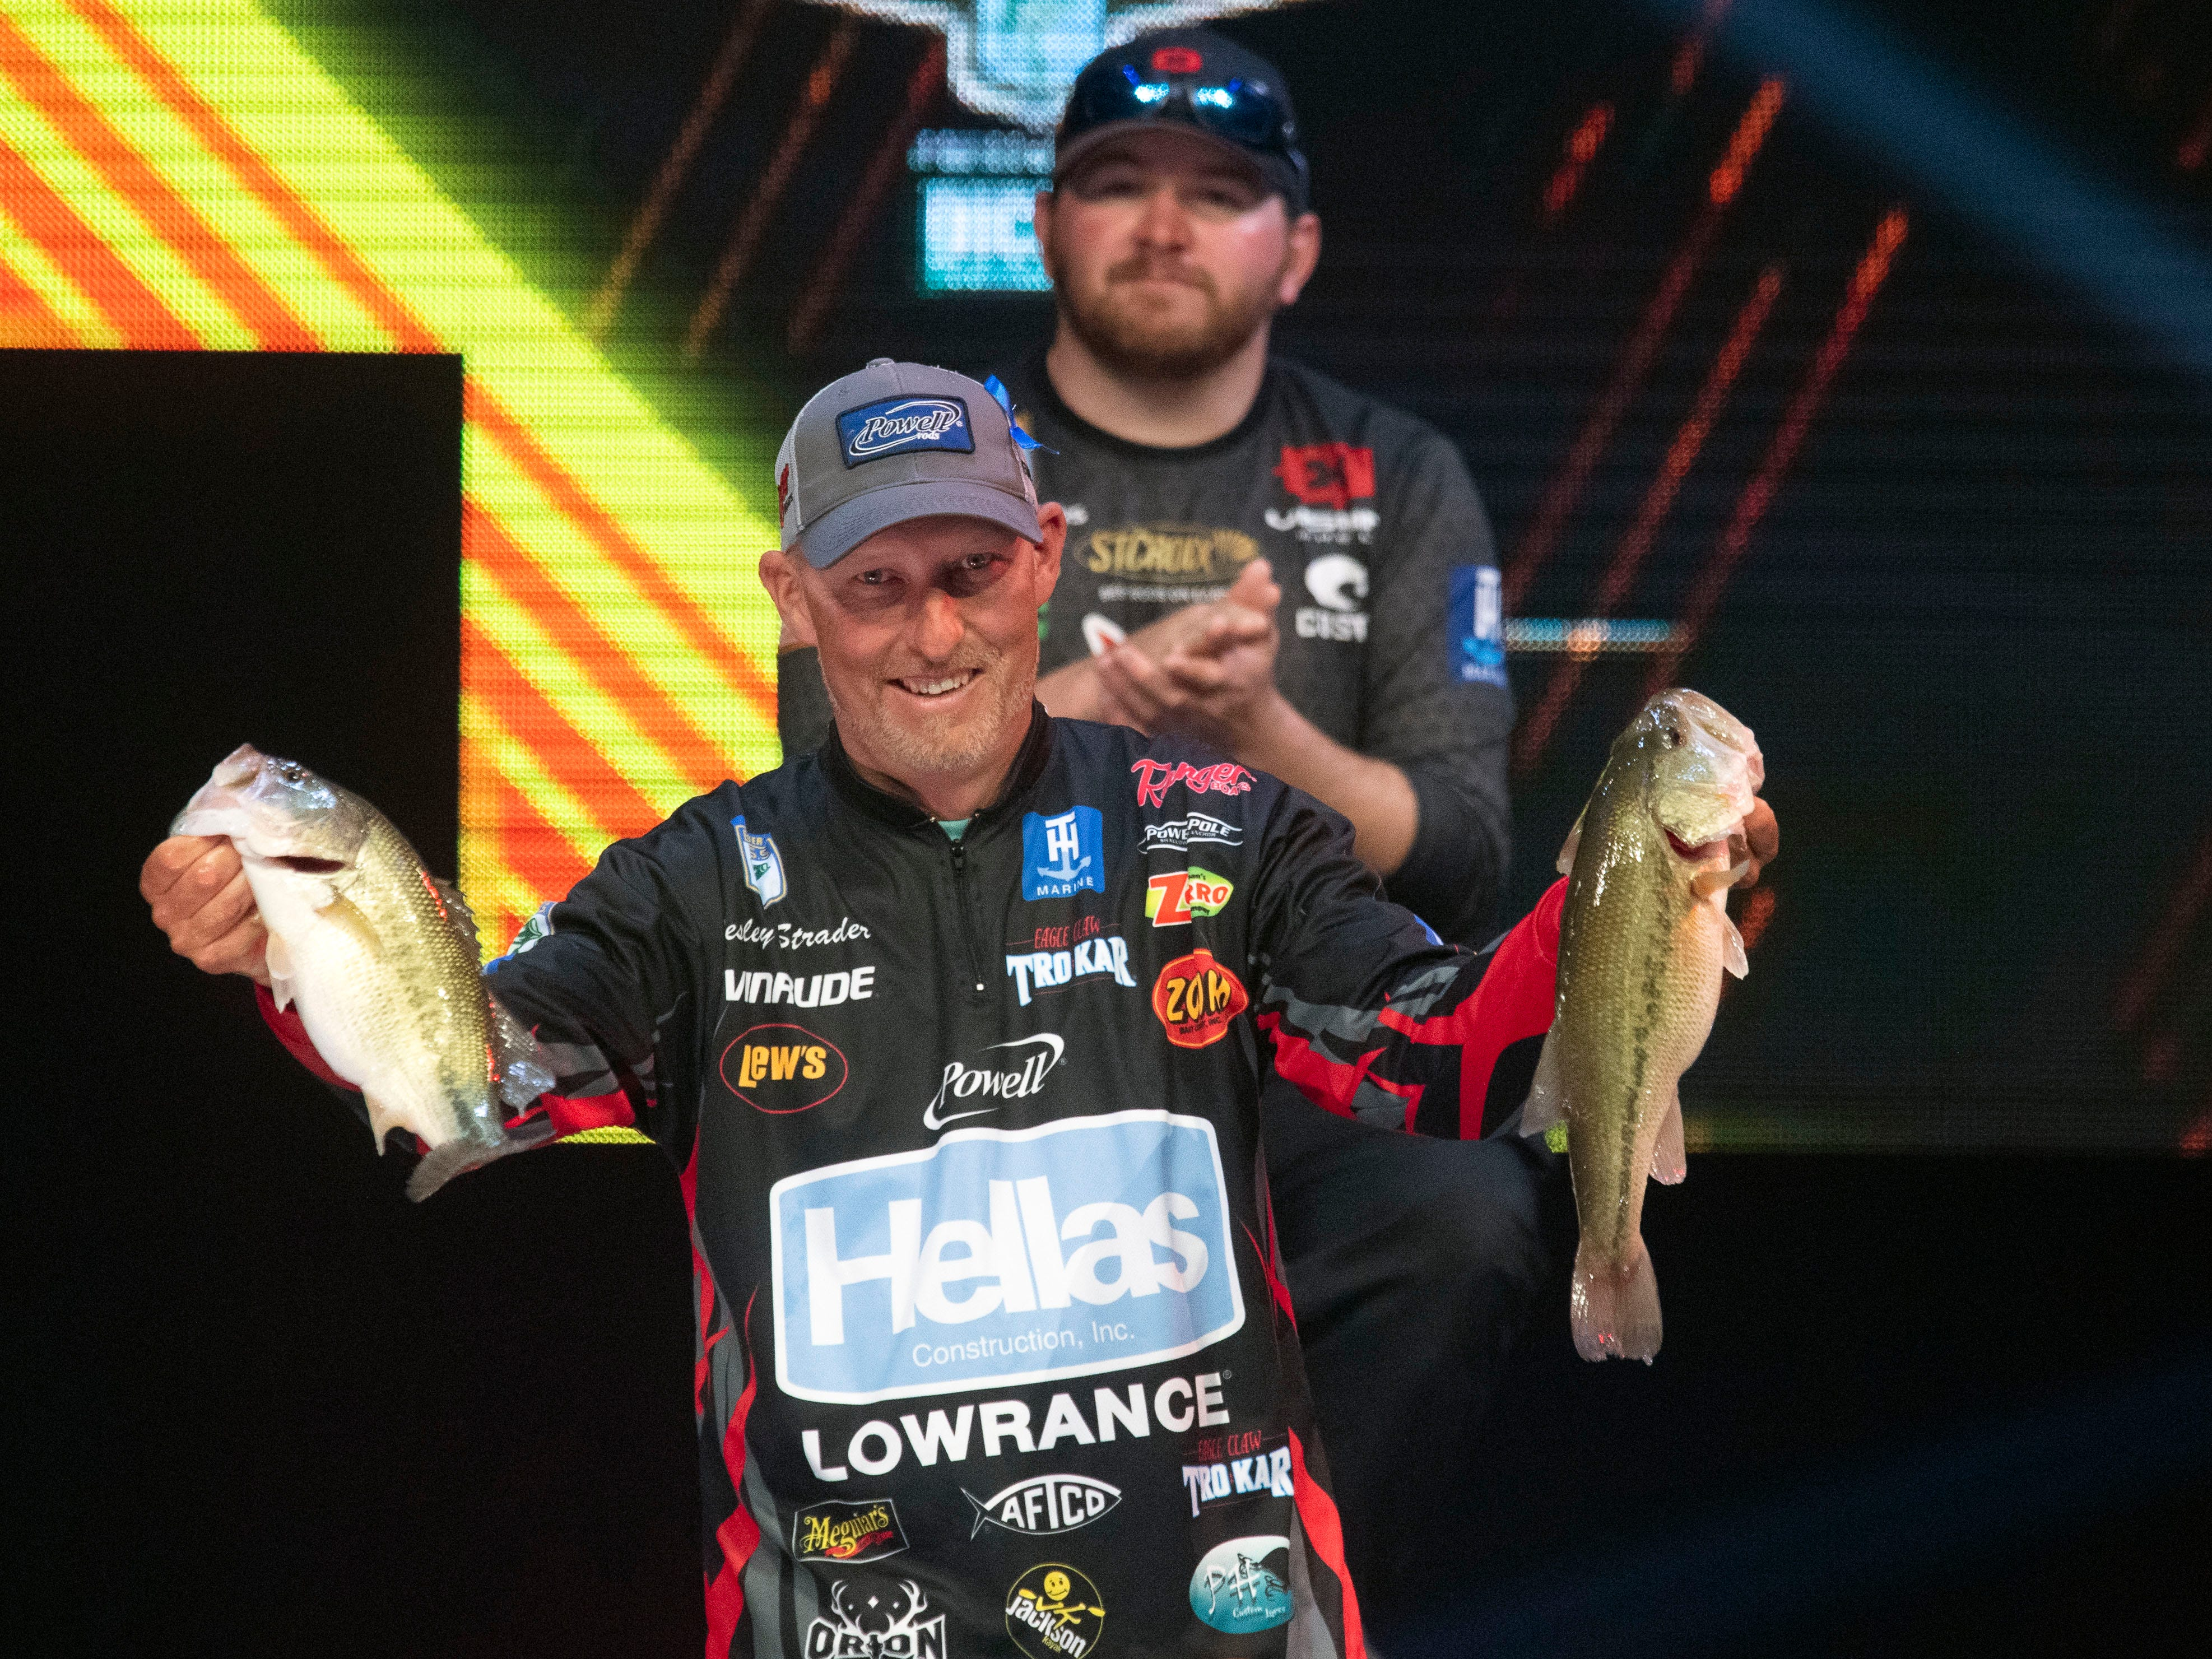 Spring City, TN native Wesley Strader show his two best catches at the final wiegh-in of the Bassmaster Classic at Thompson-Boling Arena on Sunday, March 17, 2019. Strader came in 7th place with bass weighing a total of 39 pounds, 8 ounces in three days of competition.